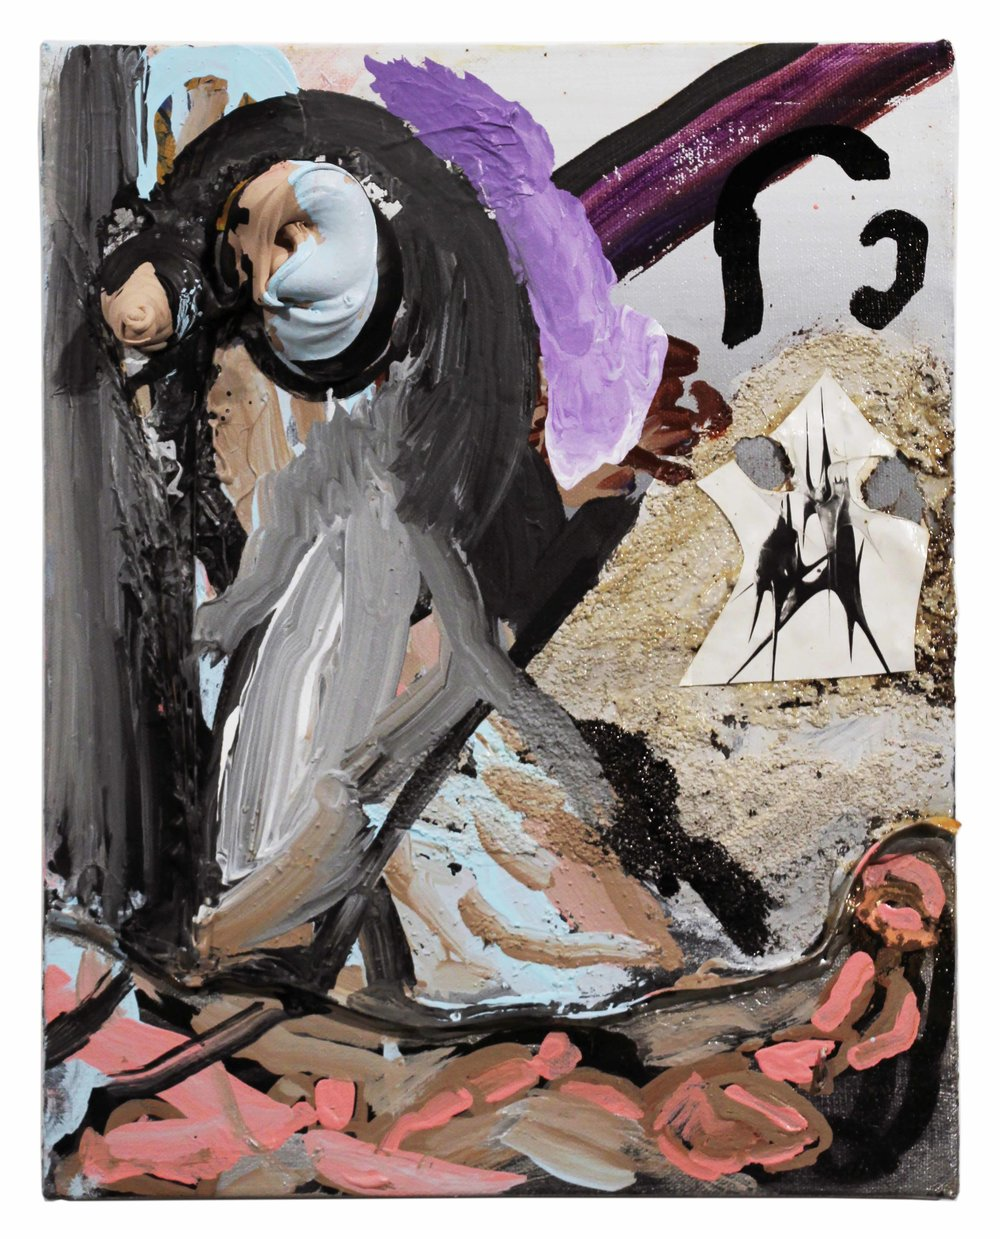 Drew Beattie  St. George and the Dragon   2013 acrylic, sand, bondo, permanent marker and collage on canvas 14 x 11 inches